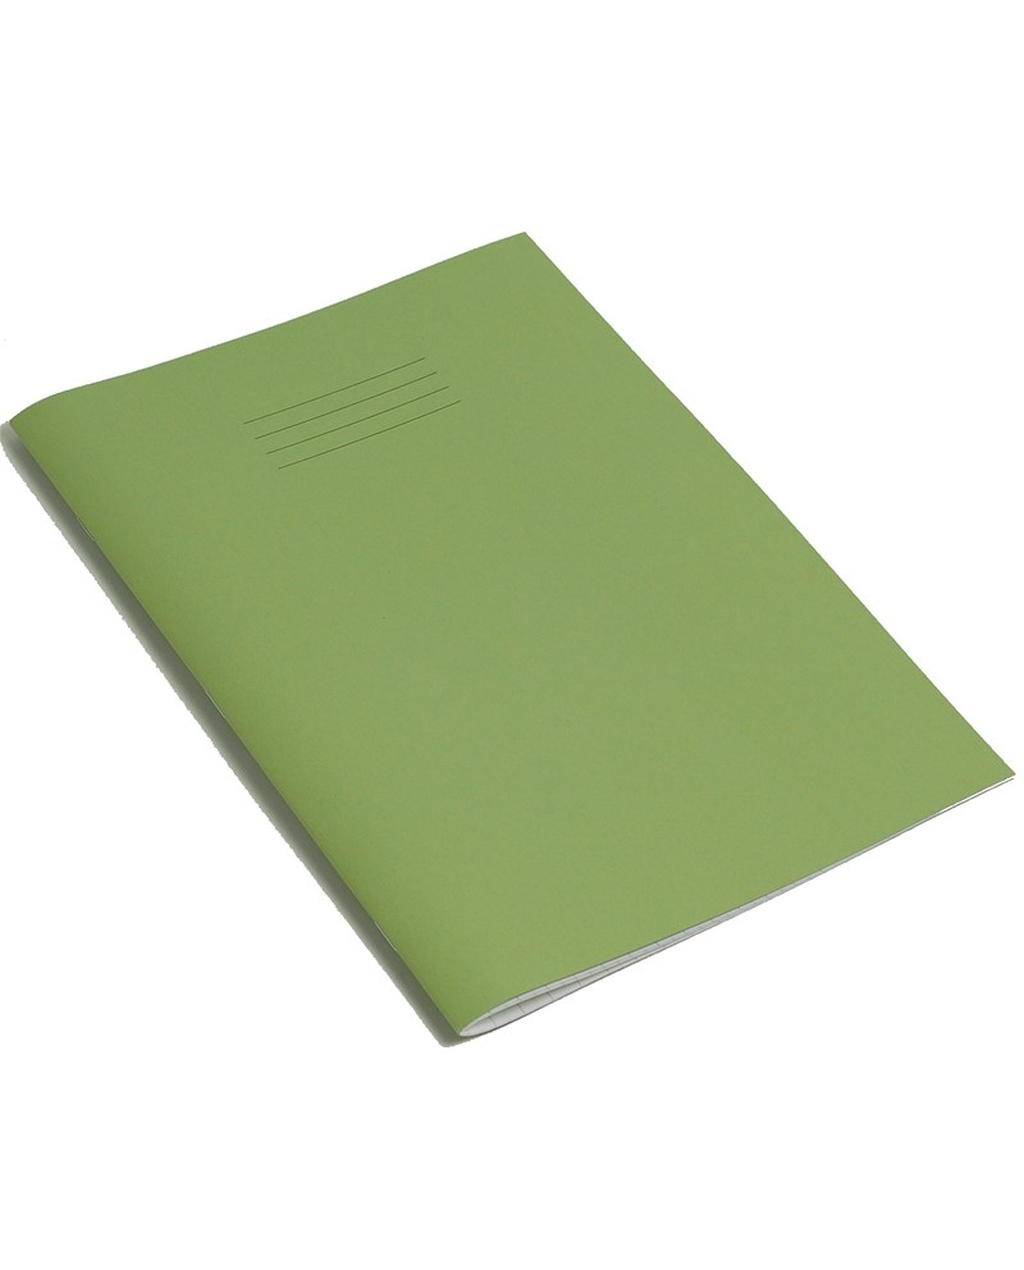 Exercise Book 8 x 6.5 (203 x 165mm) Light Green Cover 8mm Ruled & Margin 48 Pages